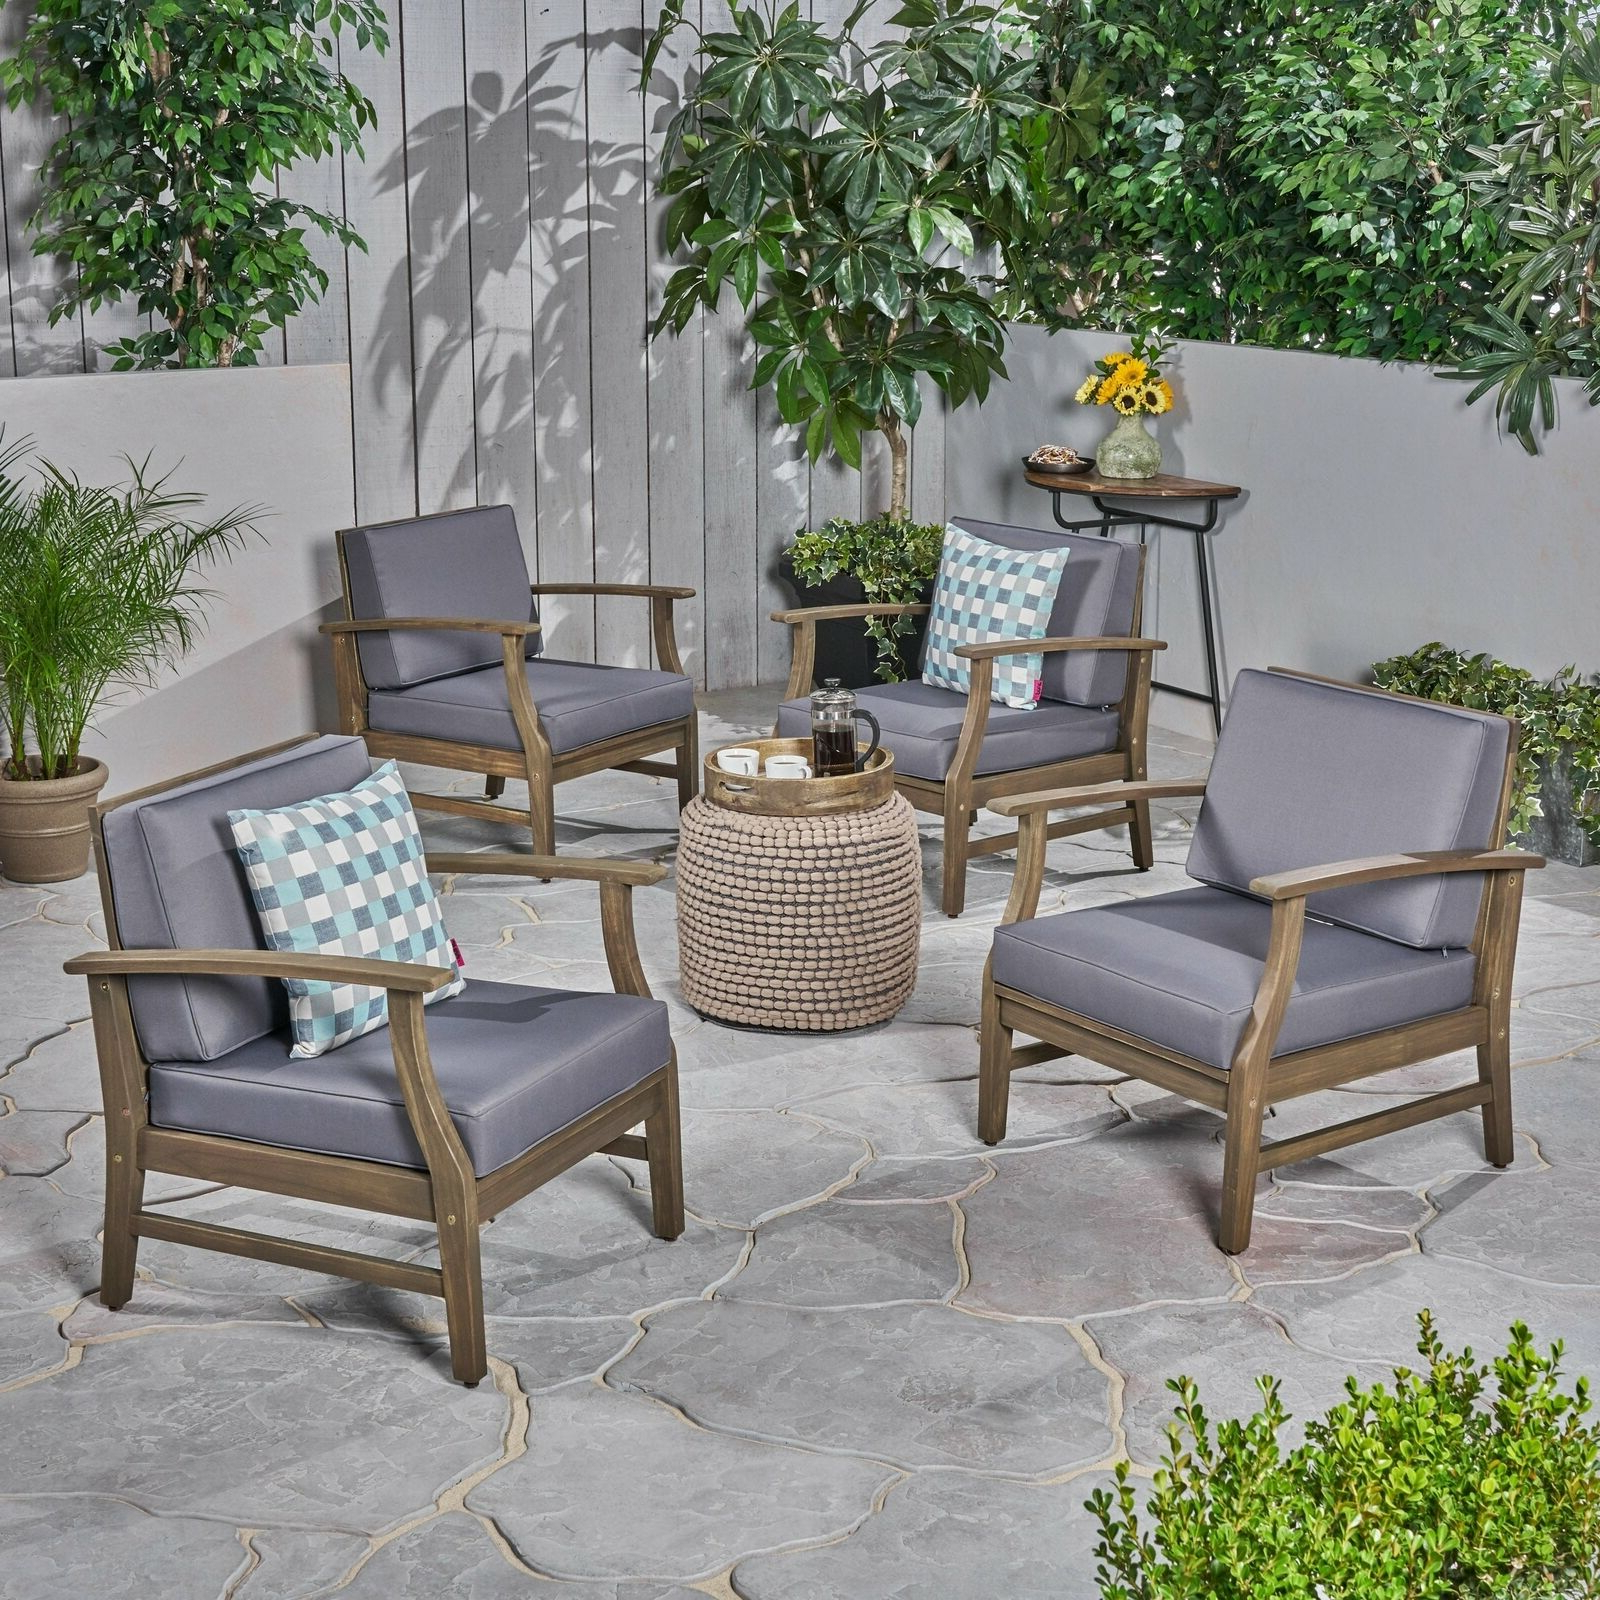 Famous Perla Outdoor Acacia Wood Club Chair With Cushion (set Of 4) Gray Finish + Dark Pertaining To Perla Outdoor Acacia Wood Chaise Lounges (View 24 of 25)